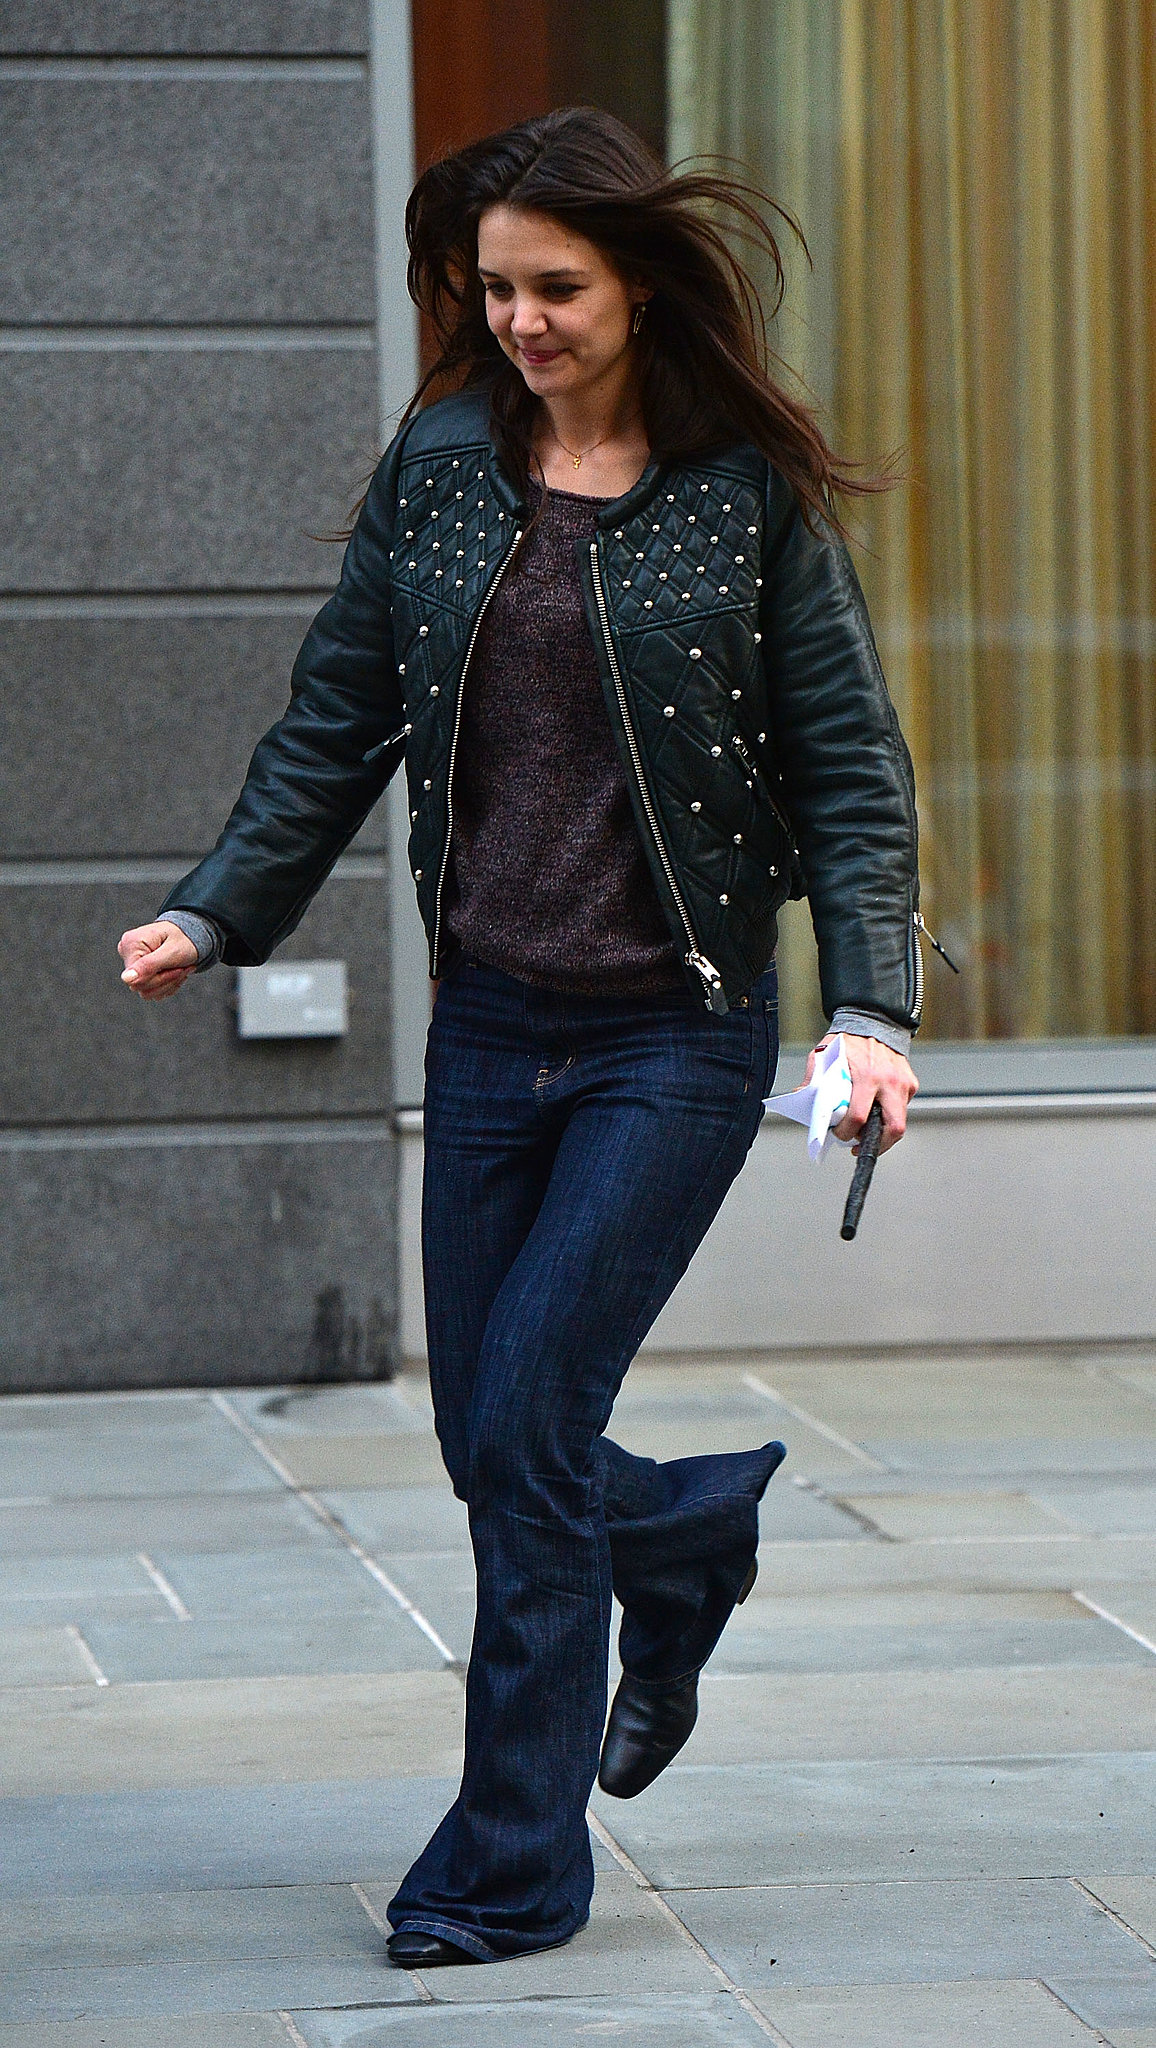 Katie's studded Isabel Marant leather jacket kept with the moody